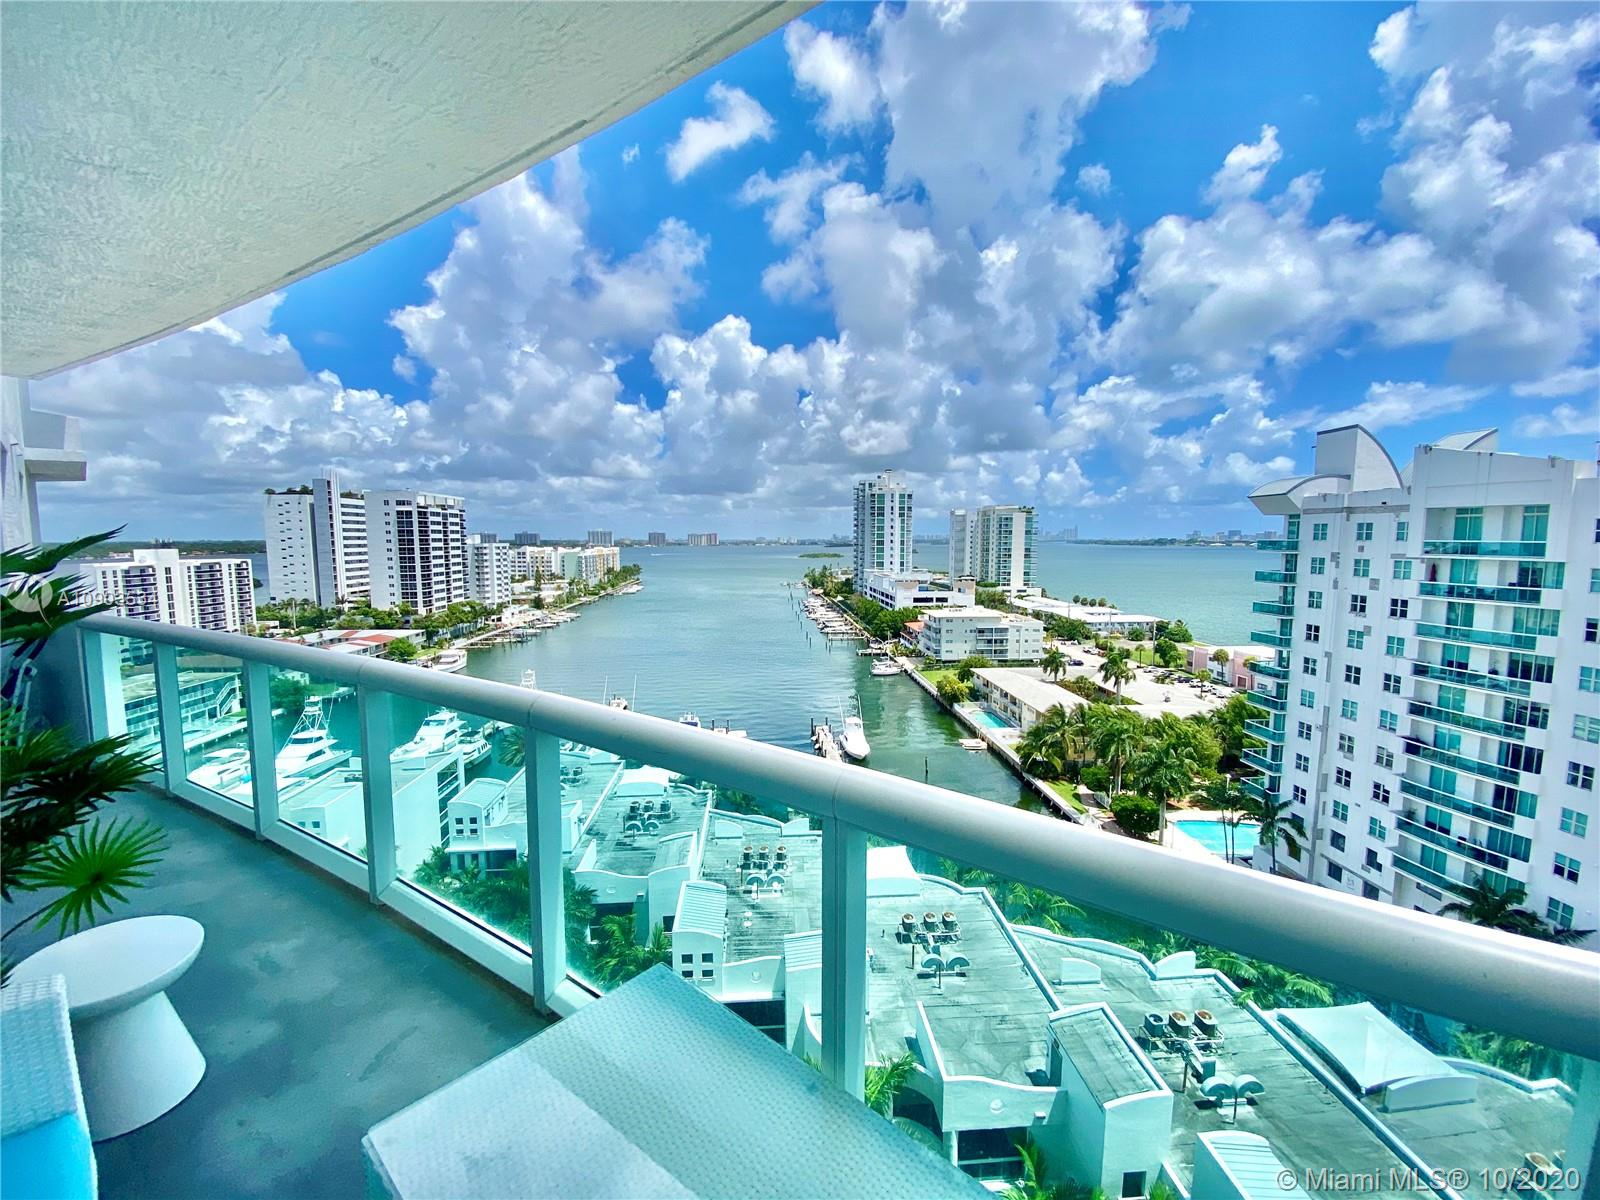 Waterfront living with amazing bay views from all rooms from this spacious bay front 2-bedroom condo with great floor plan and a large beautiful balcony.  Includes two car parking spaces.  Only a few minute drive to the beach. Property located conveniently between Miami Beach and Miami and the restaurants.  Master bedroom includes a  walk-in closet and beautiful bathroom. Great amenities; 2 pools, jacuzzi, valet,  fitness center, condo board planning to complete the Tiki hut amenity with barbeque etc. The best priced unit in the building. Cap rate could be close to 6% depending on the sale price plus possible value appreciation.